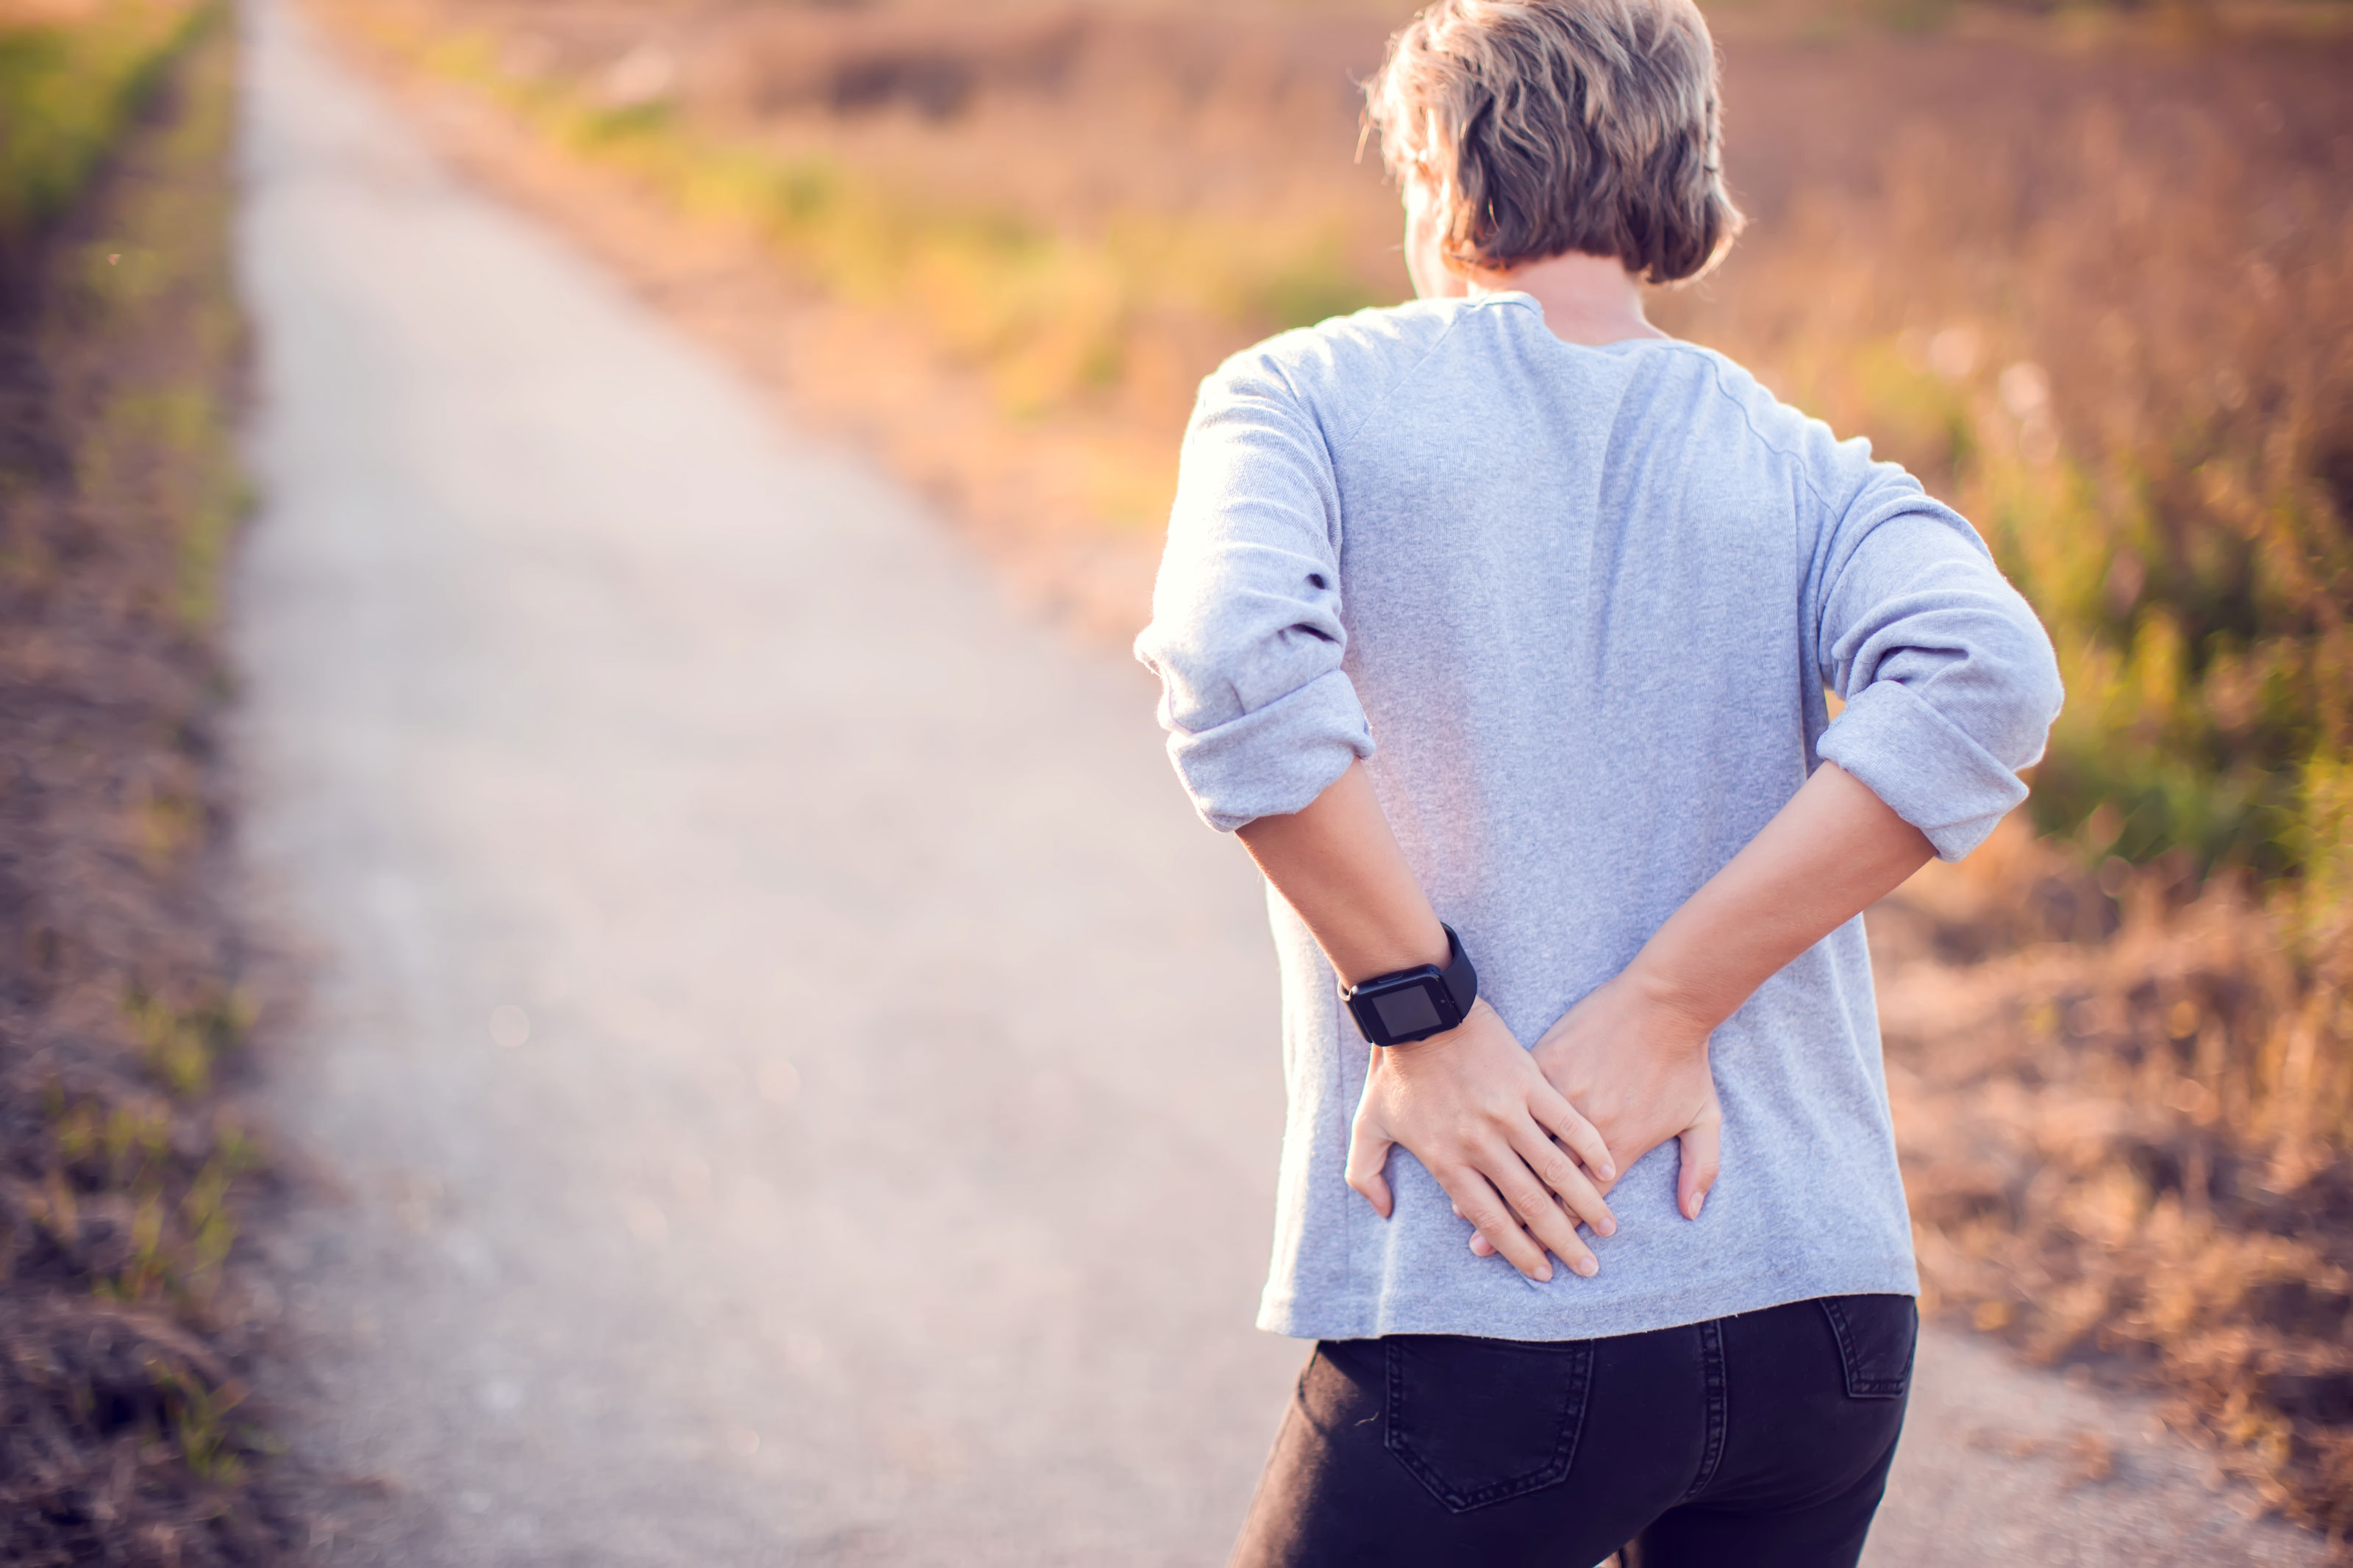 Hip pain treatment without surgery or pills